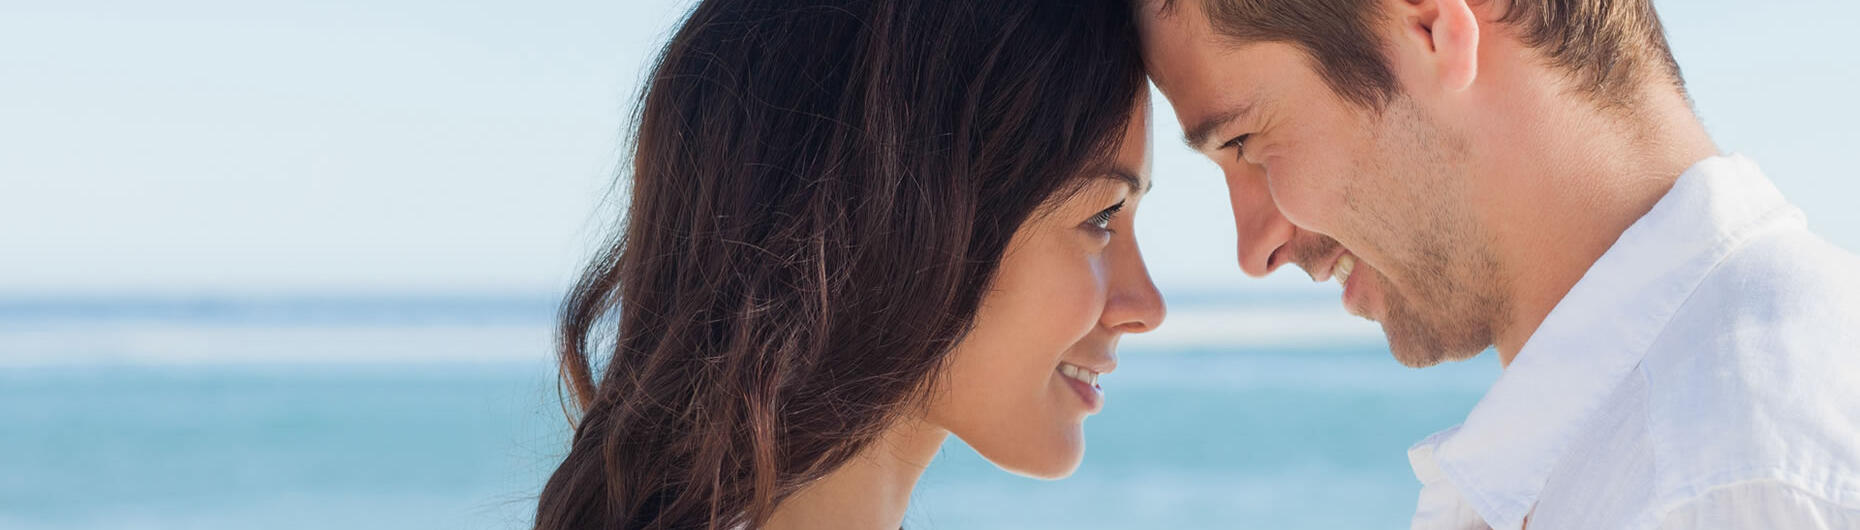 vacanzespinnaker en holidays-for-couples 004